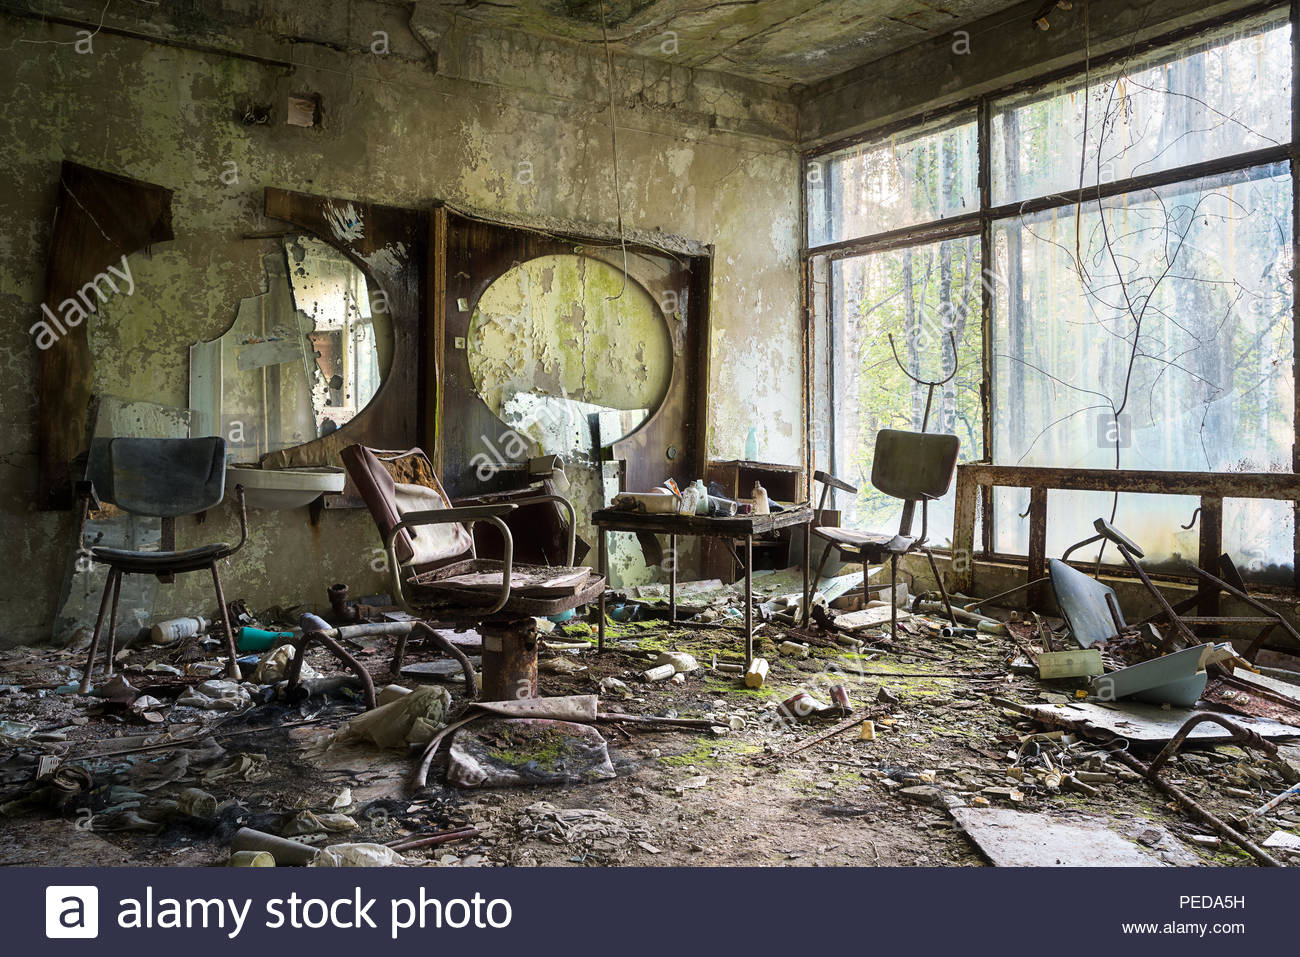 Indoor at the Abandoned city of Pripyat in Chernobyl. - Stock Image